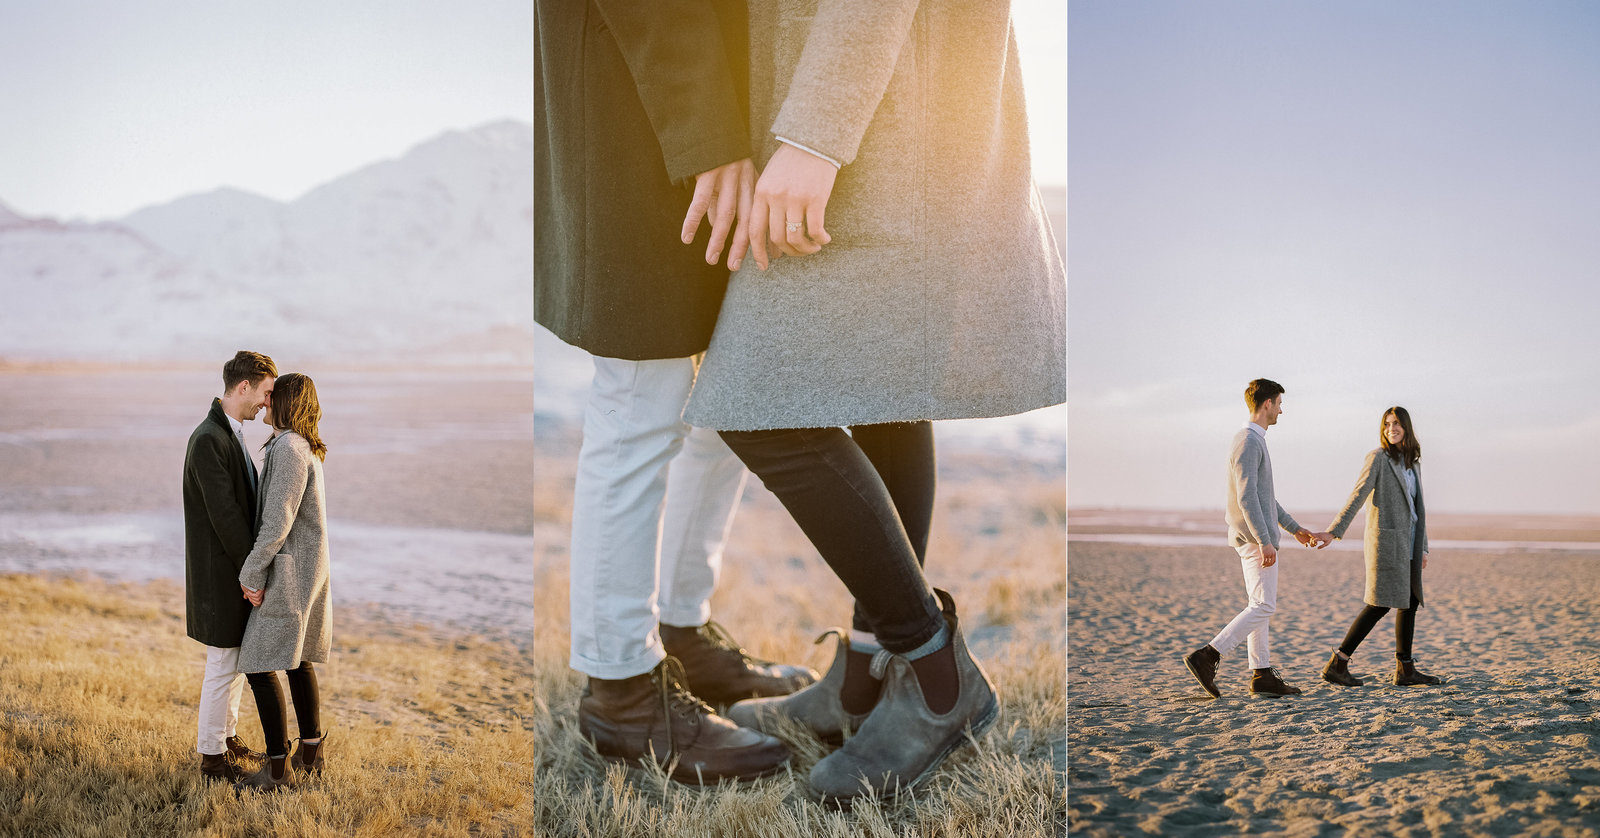 Braden & Alynn, Great Salt Lake Engagements